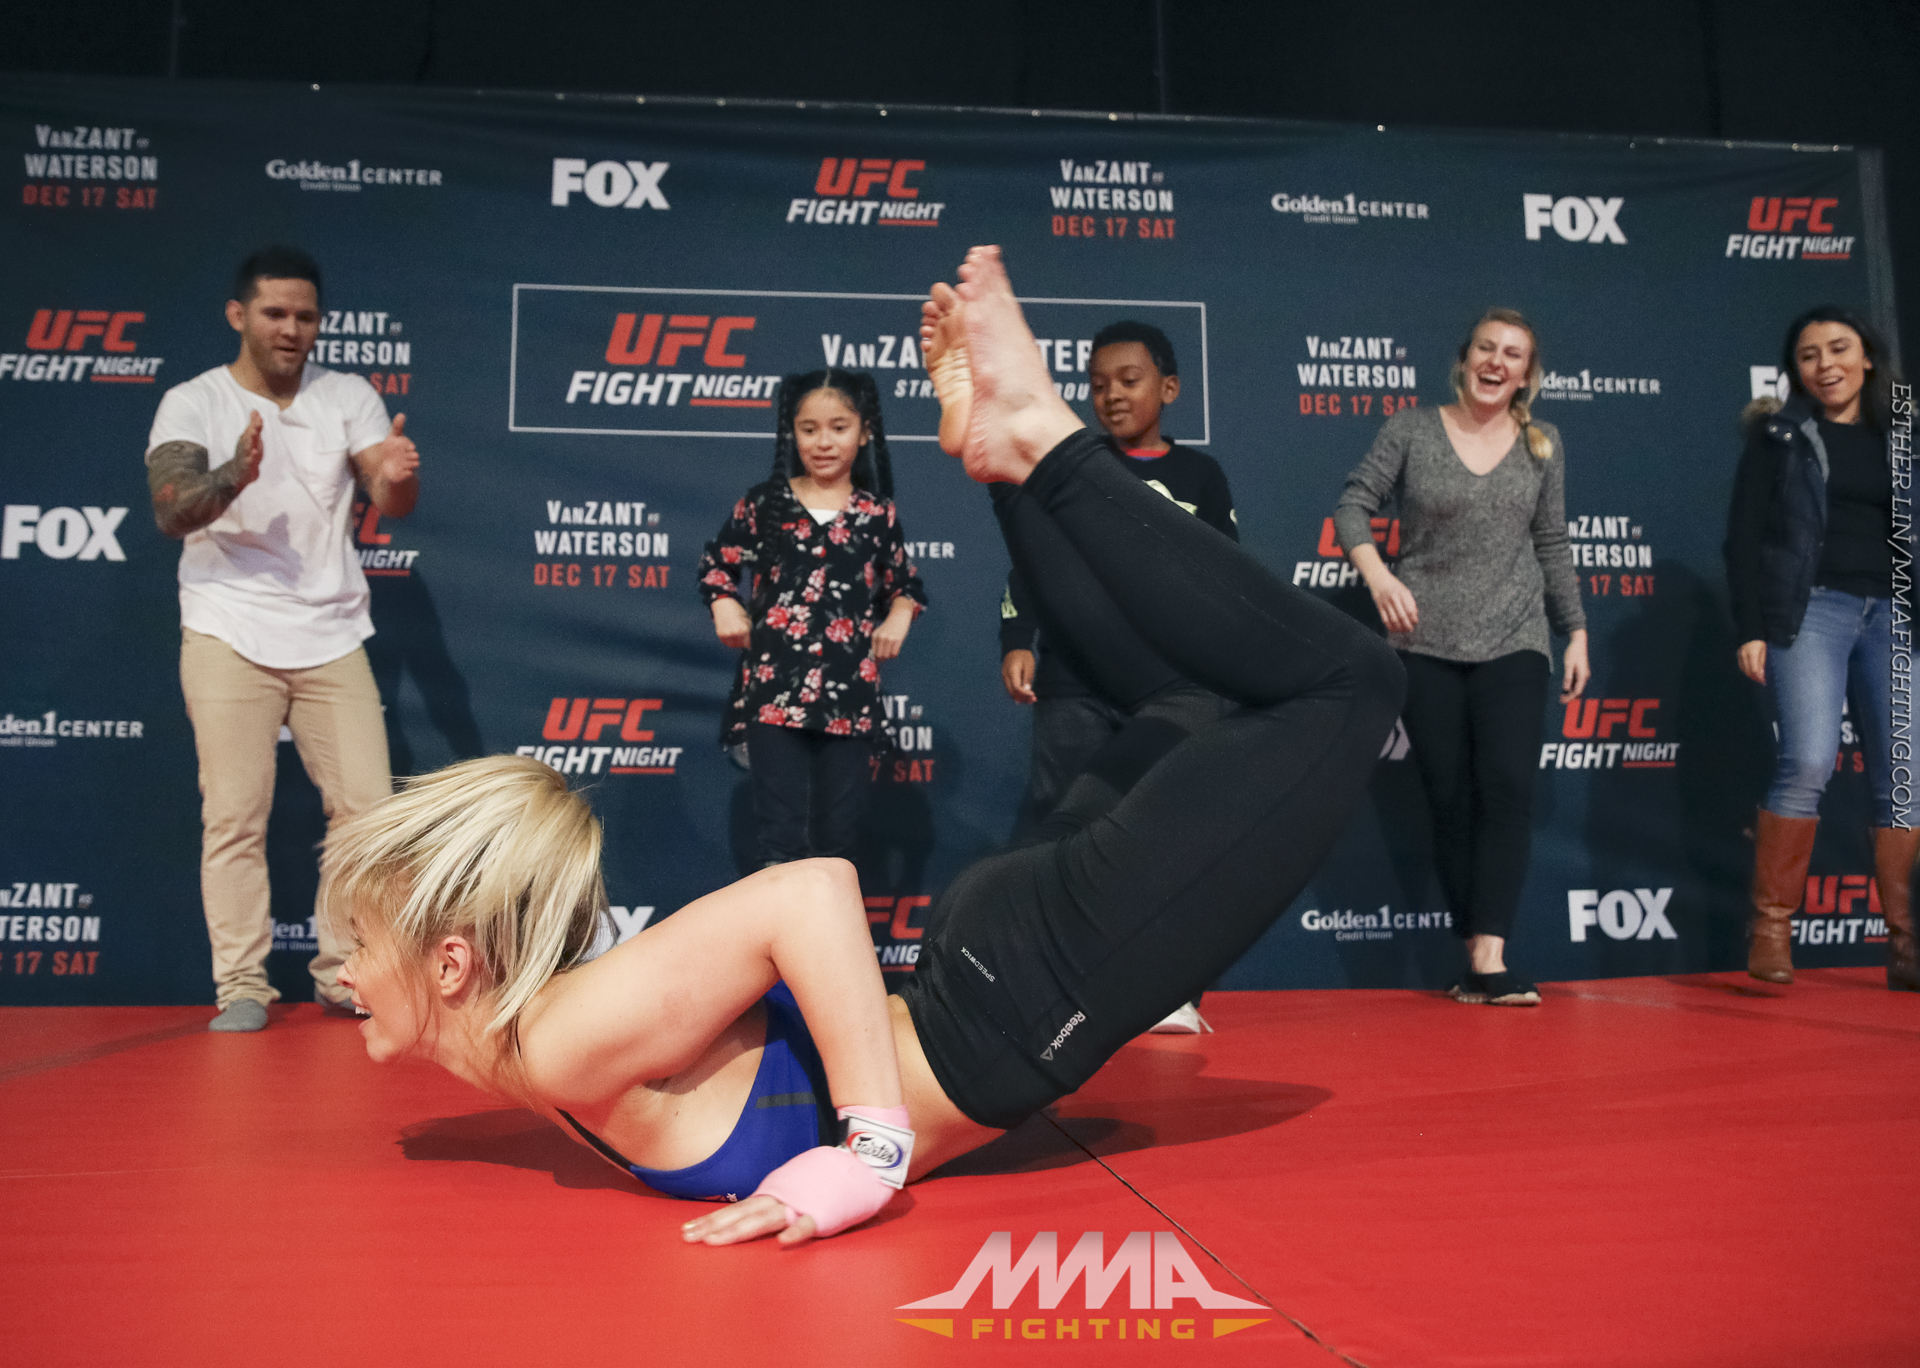 Ufc On Fox 22 Open Workout Photos Paige Vanzant Does The Worm During Workouts At Golden 1 Center In Sacramento Thurs Dec